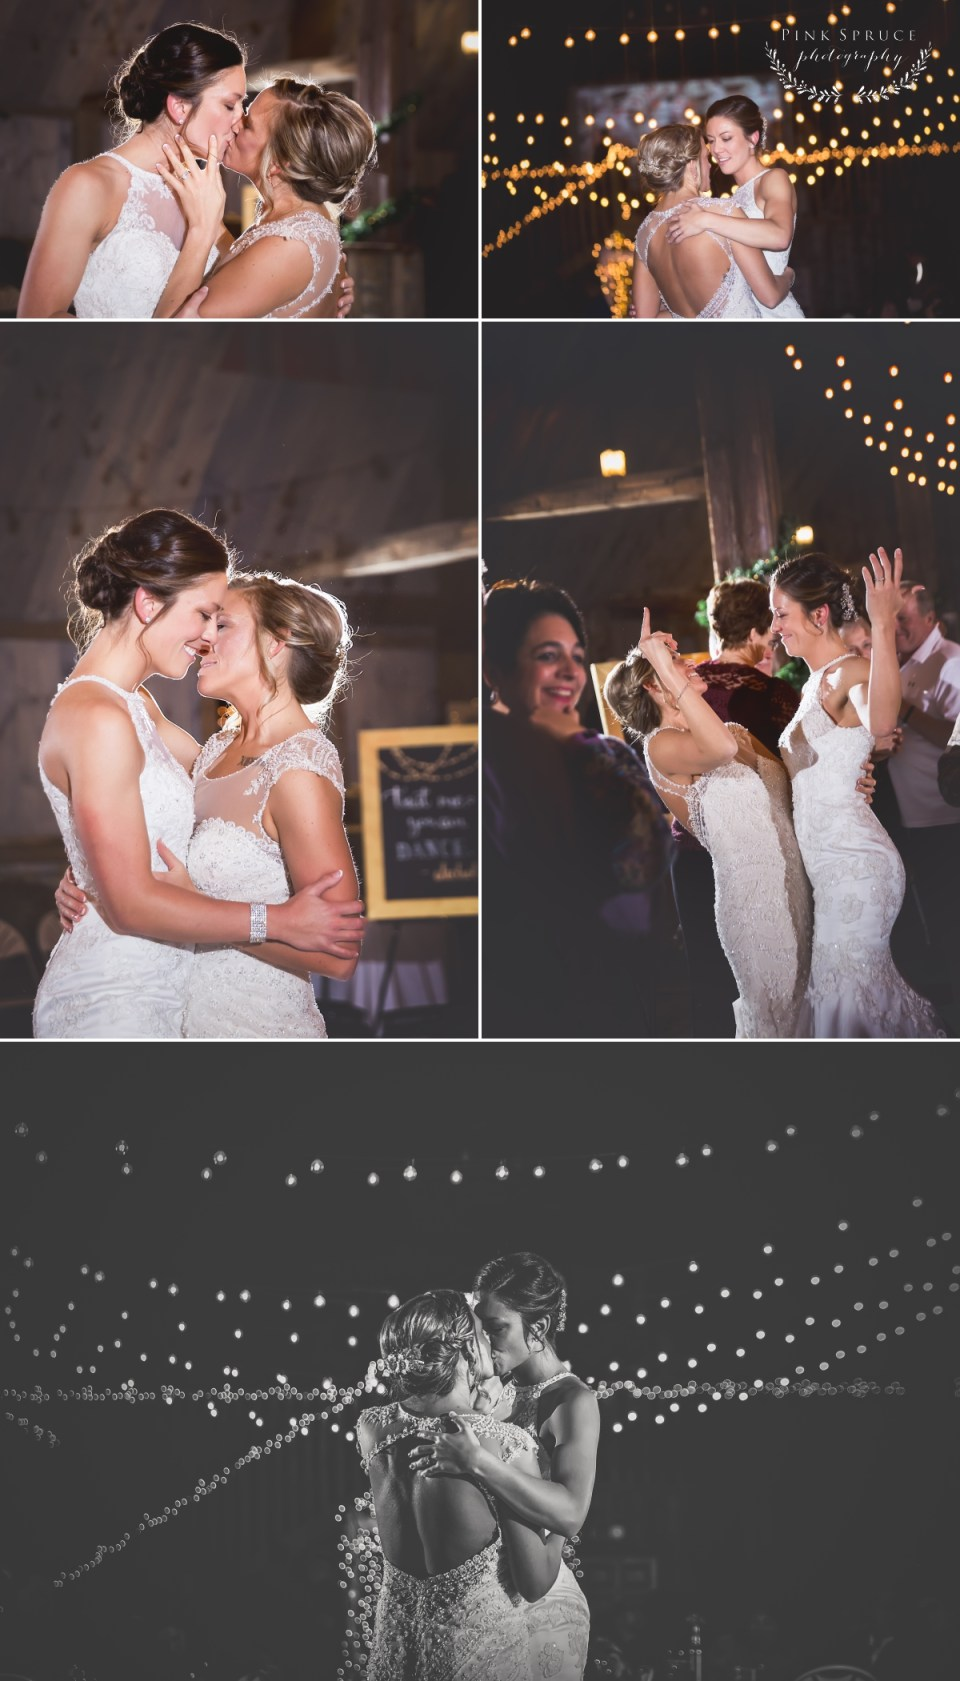 Rustic Winter Wedding at Pedretti's Party Barn, Viroqua, WI | Photography by: Pink Spruce Photography www.pinksprucephotography.com | Lesbian Wedding, Same Sex Wedding, First Dance, Wisconsin Wedding